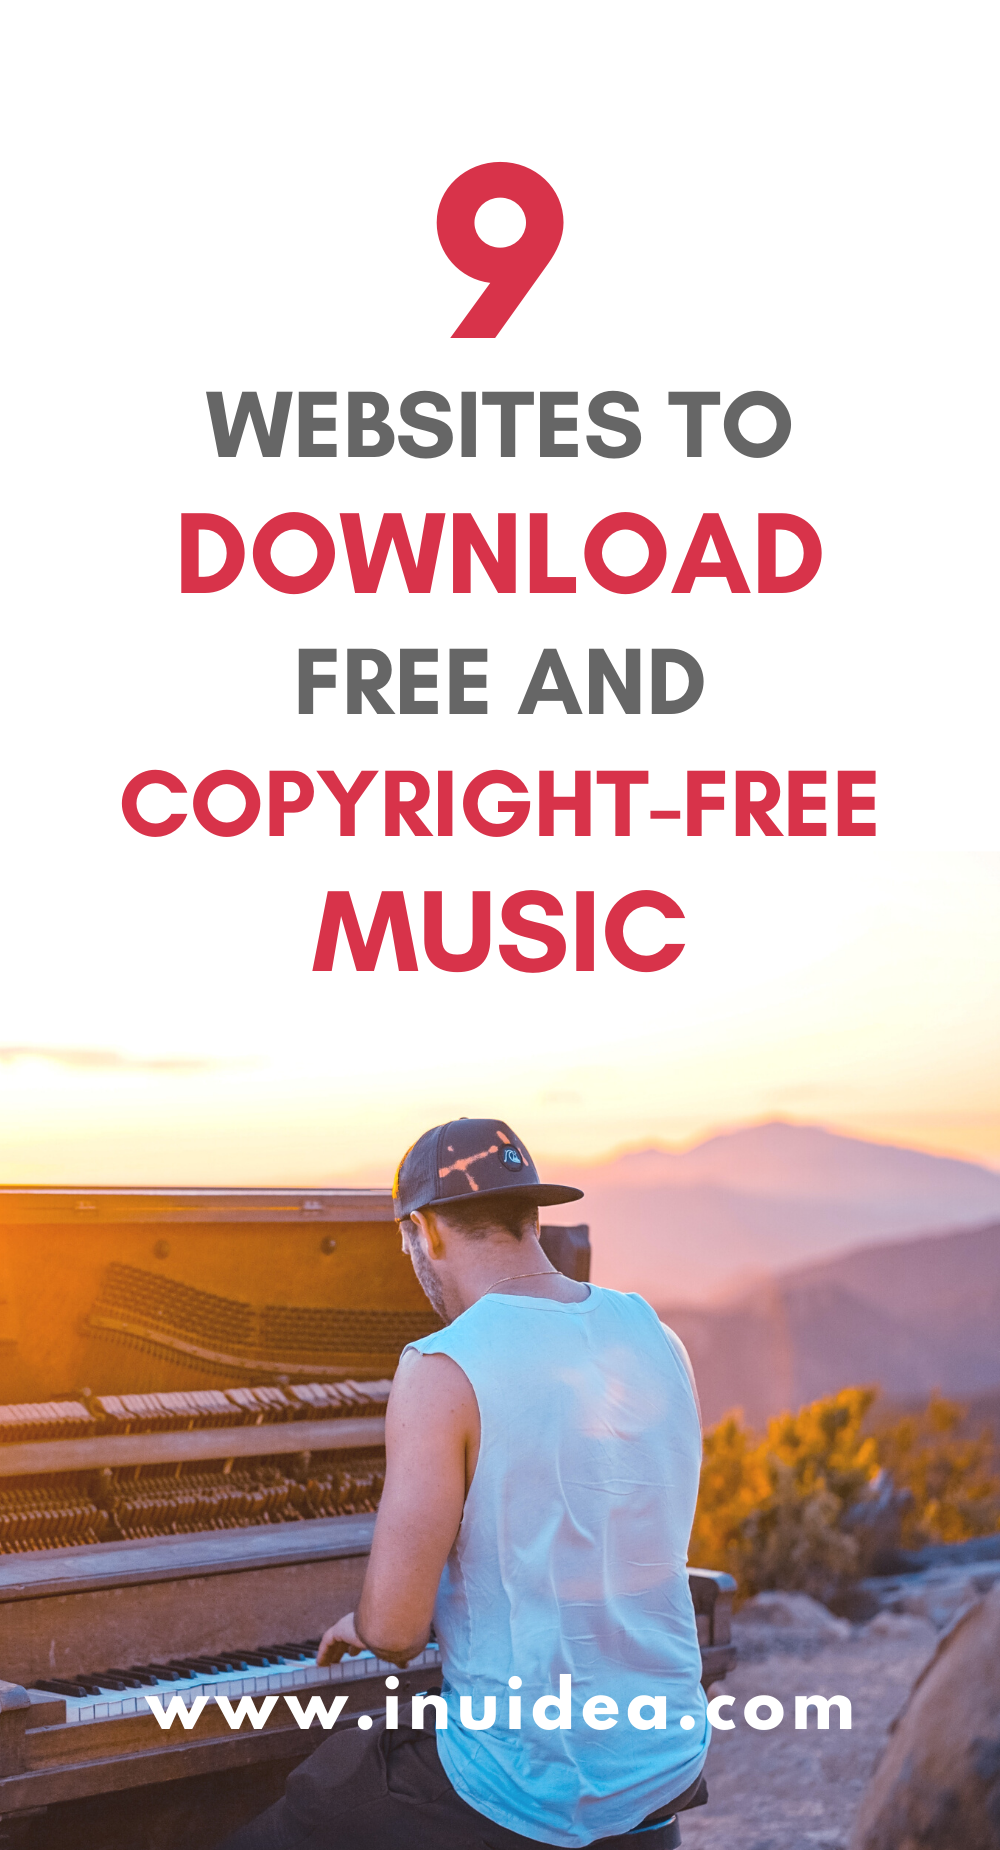 Websites to Download Free and Copyright-Free Music for YouTube Videos